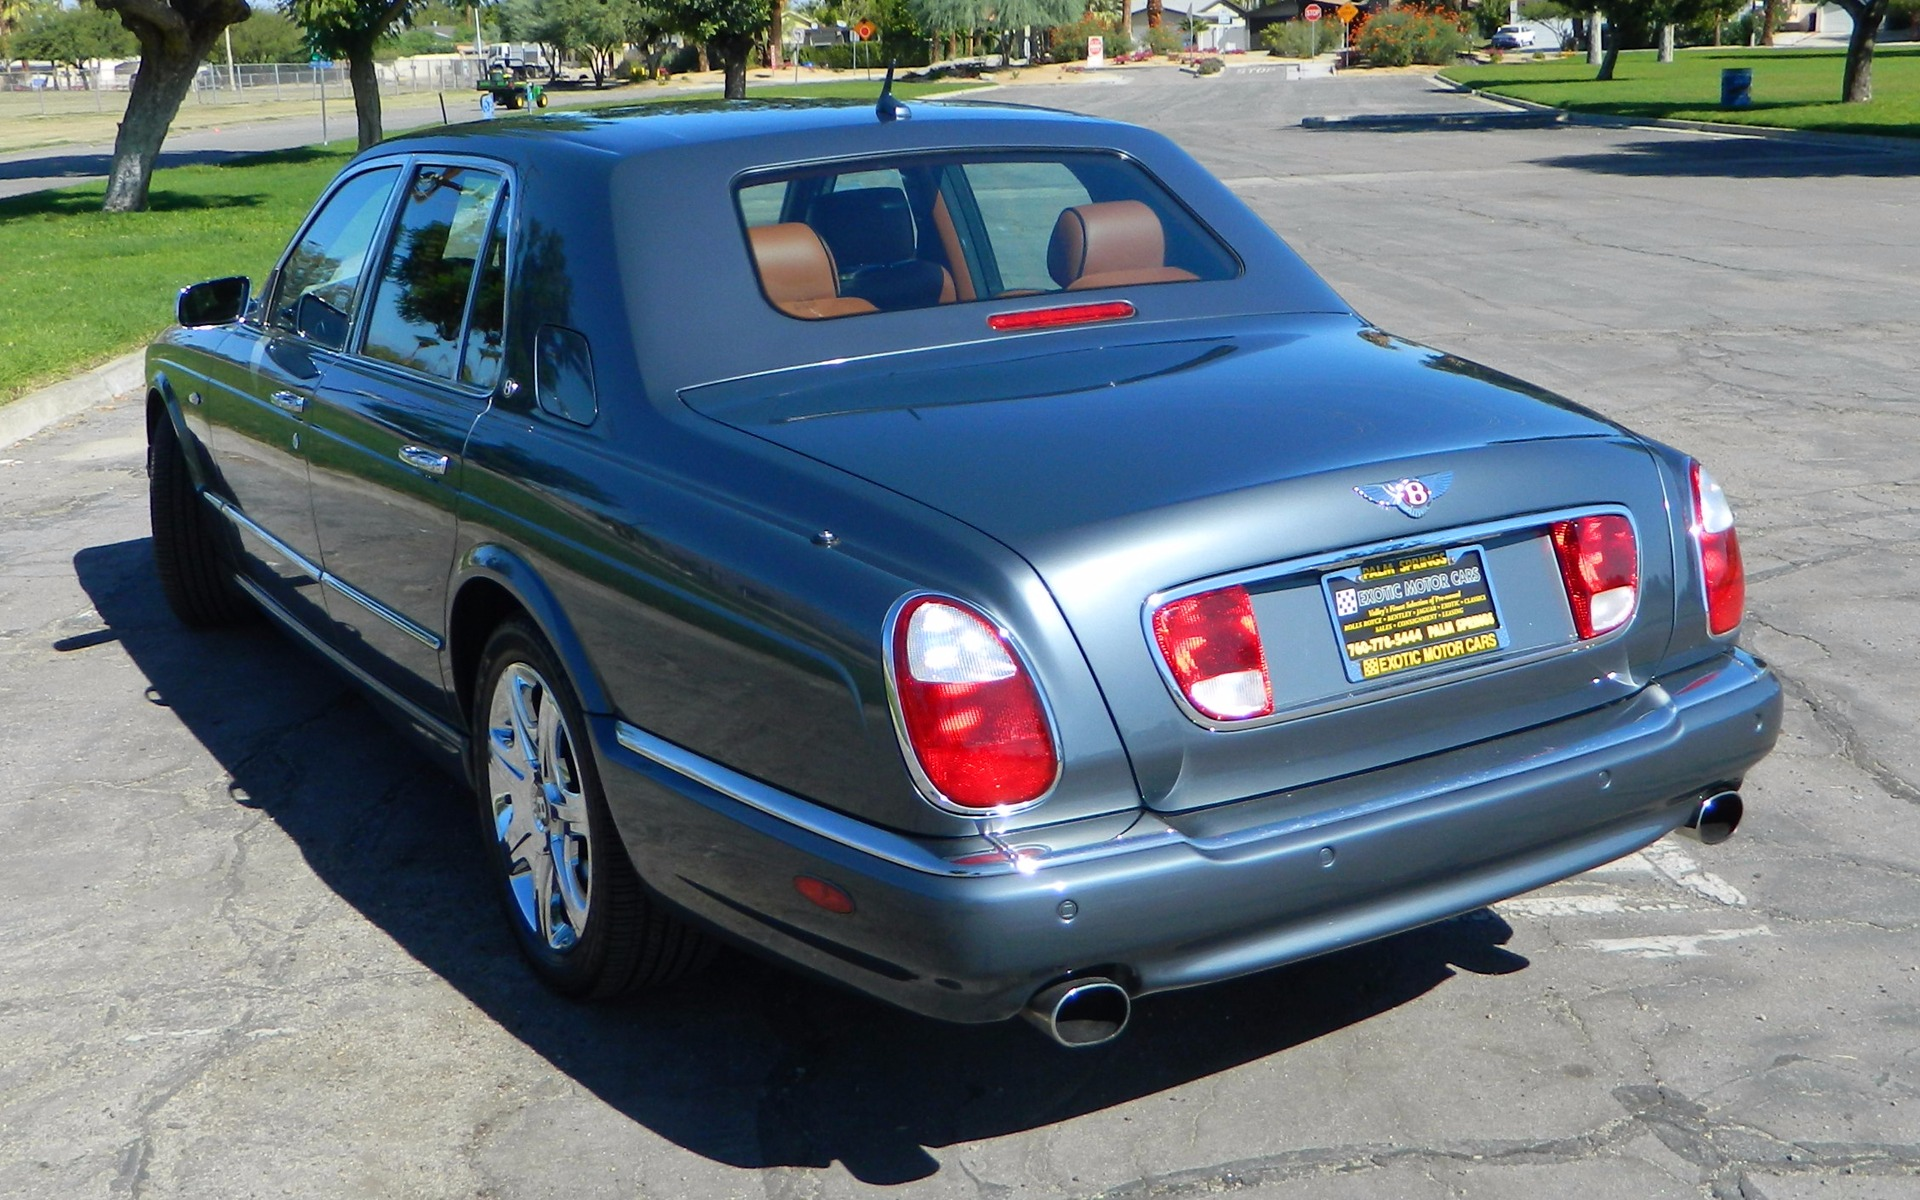 2006 bentley arnage r stock # be116 for sale near palm springs, ca